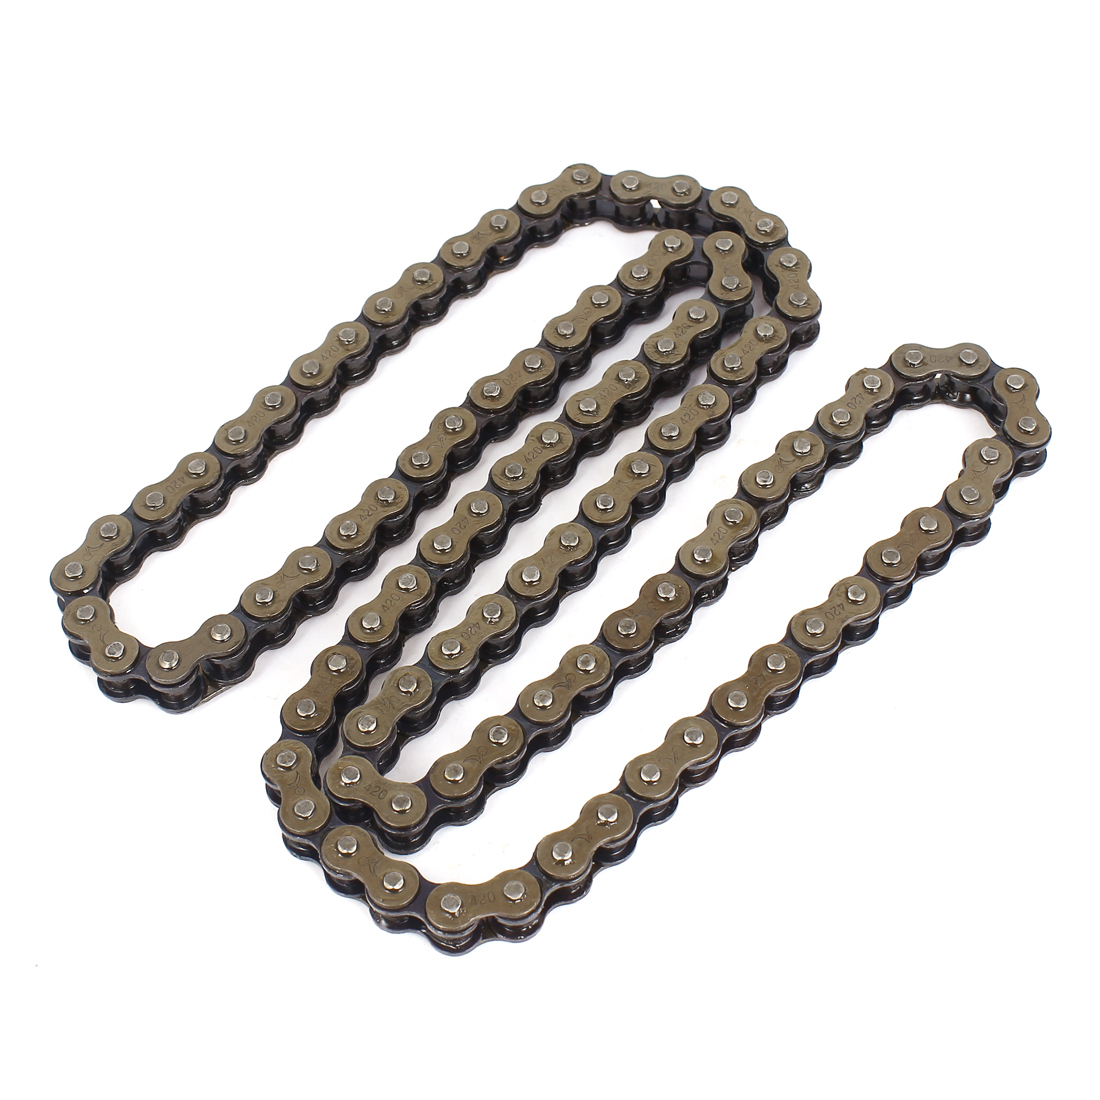 Dark Brown 420x100 O-Ringroller Drive Chain Motorcycle 420 Pitch 100 Links